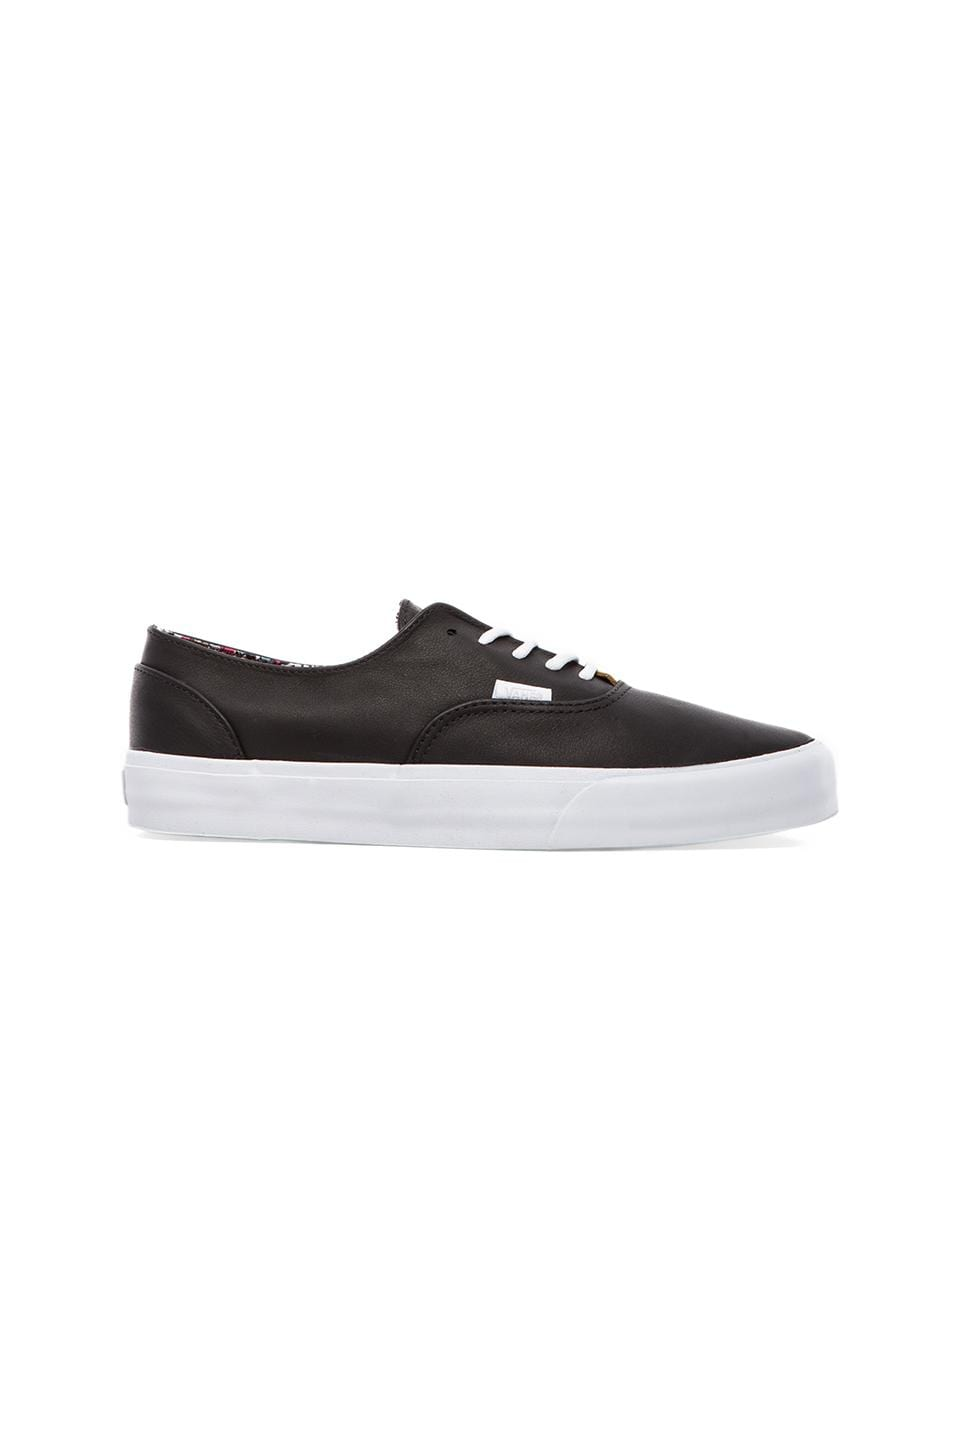 Vans California Era Decon Leather in Black